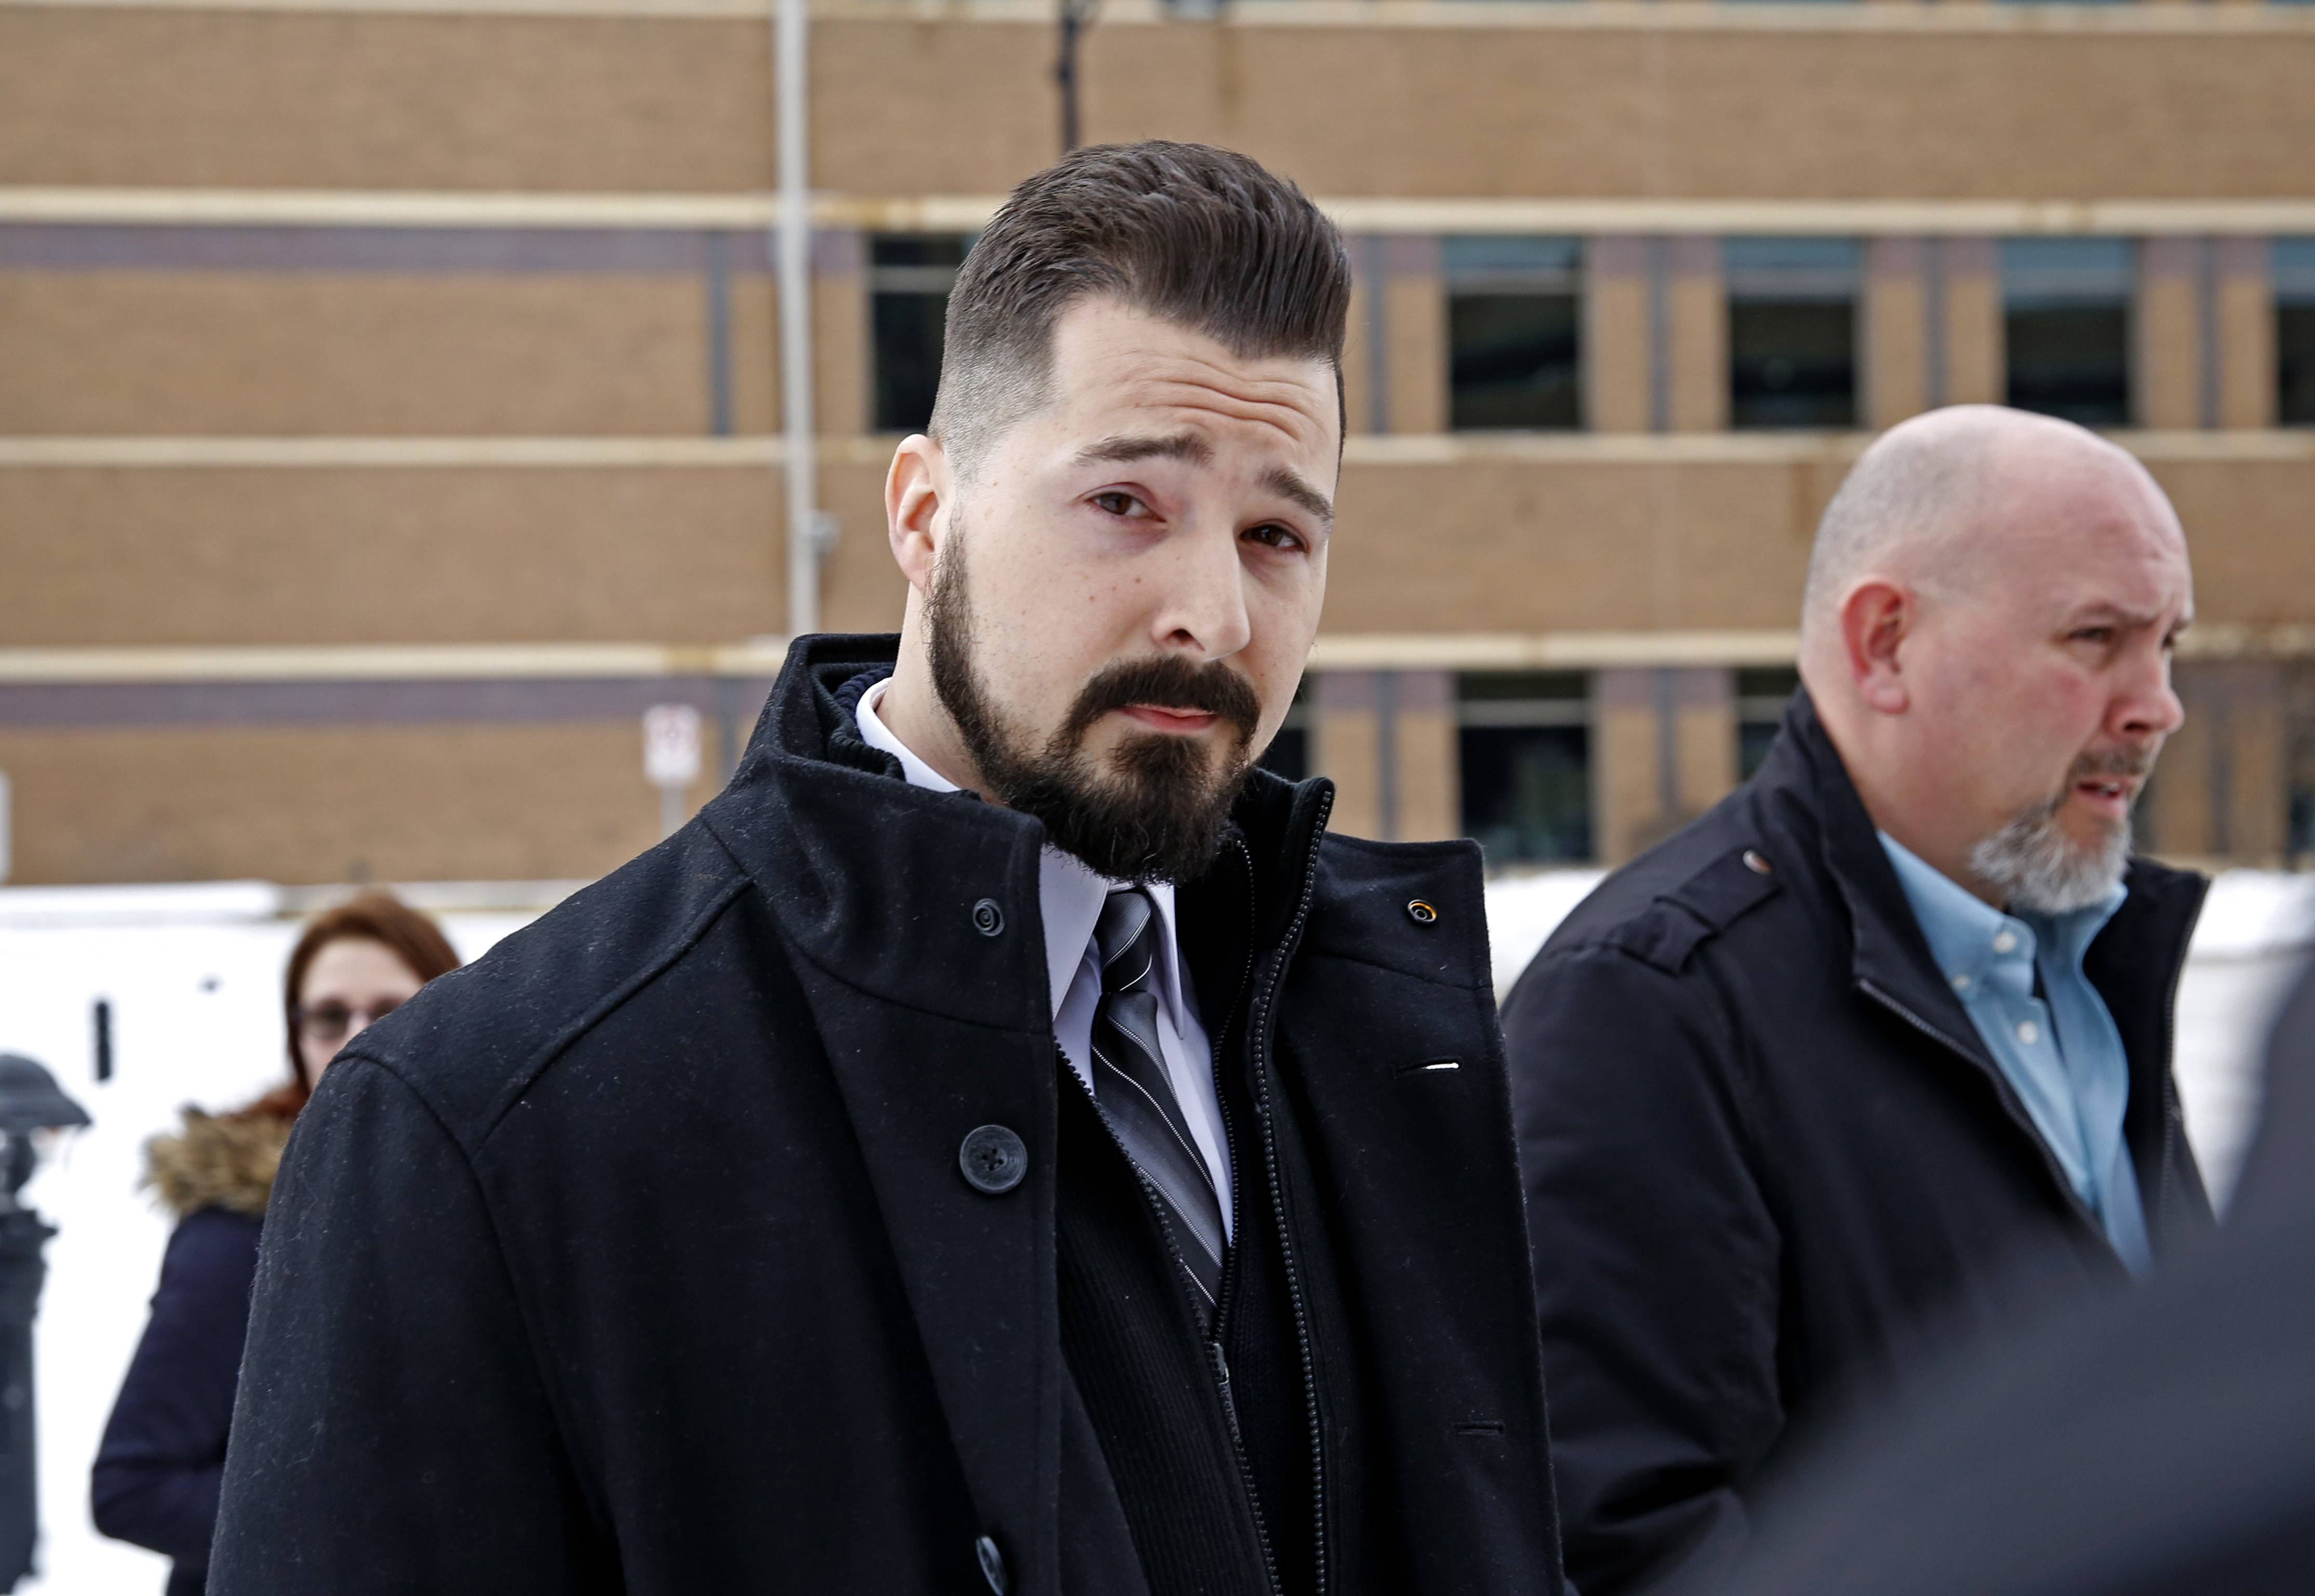 Former Schaumburg police officer John Cichy leaves the DuPage County Courthouse Tuesday after prosecutors dropped all charges against him in connection with a drug-dealing operation with two fellow officers.